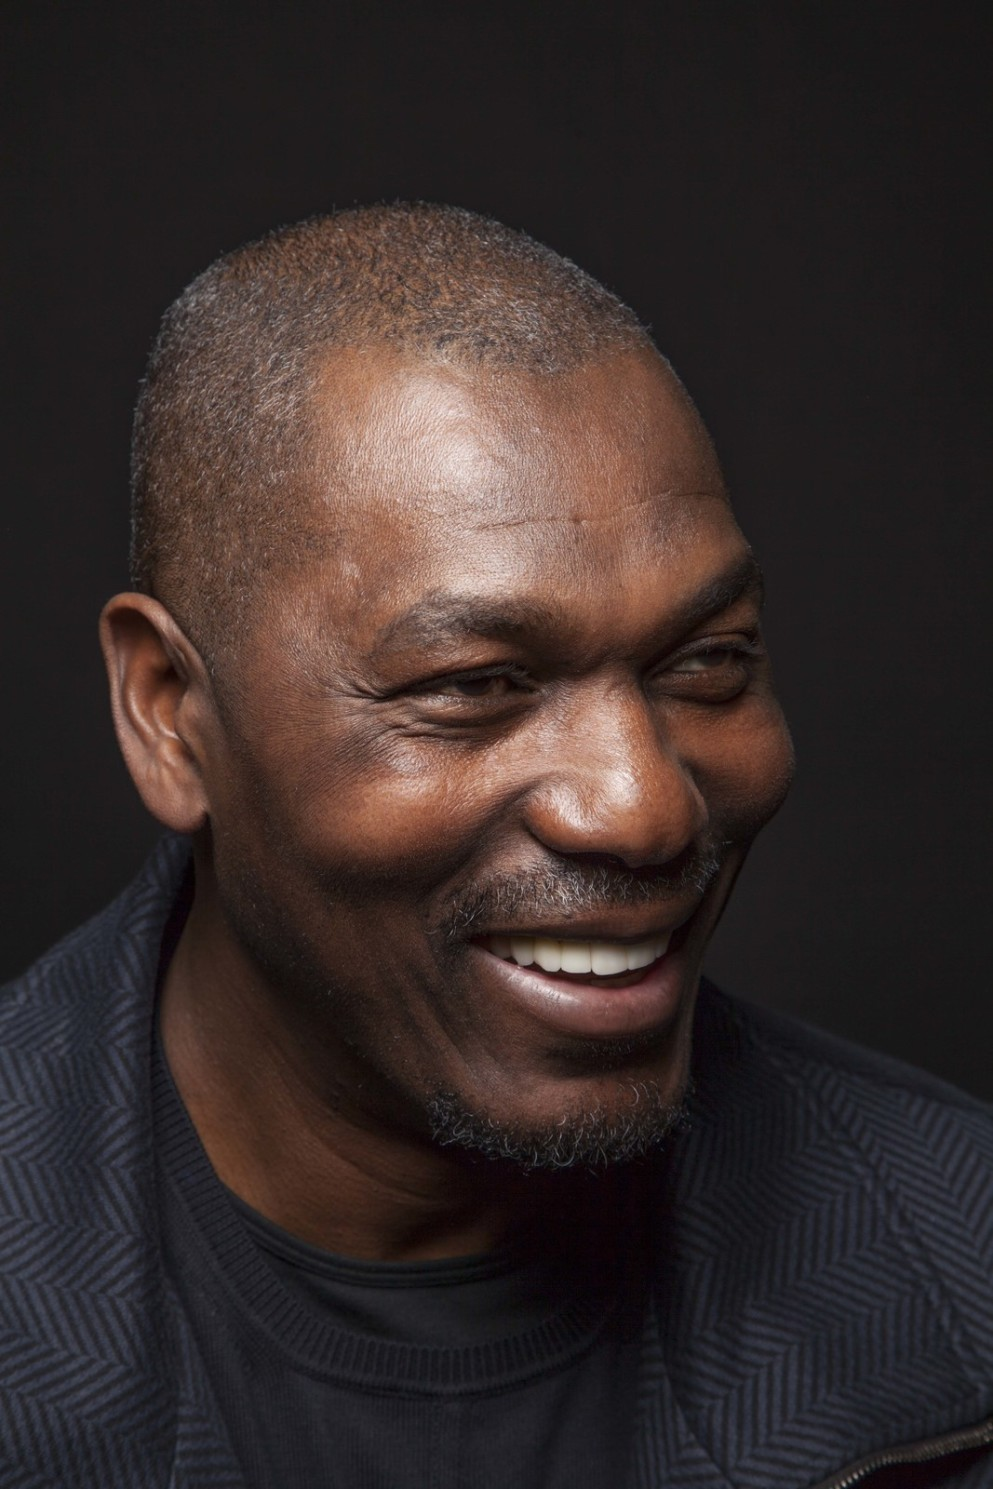 Hakeem Olajuwon At Pastorini Bosby Talent Agency Houston Texas